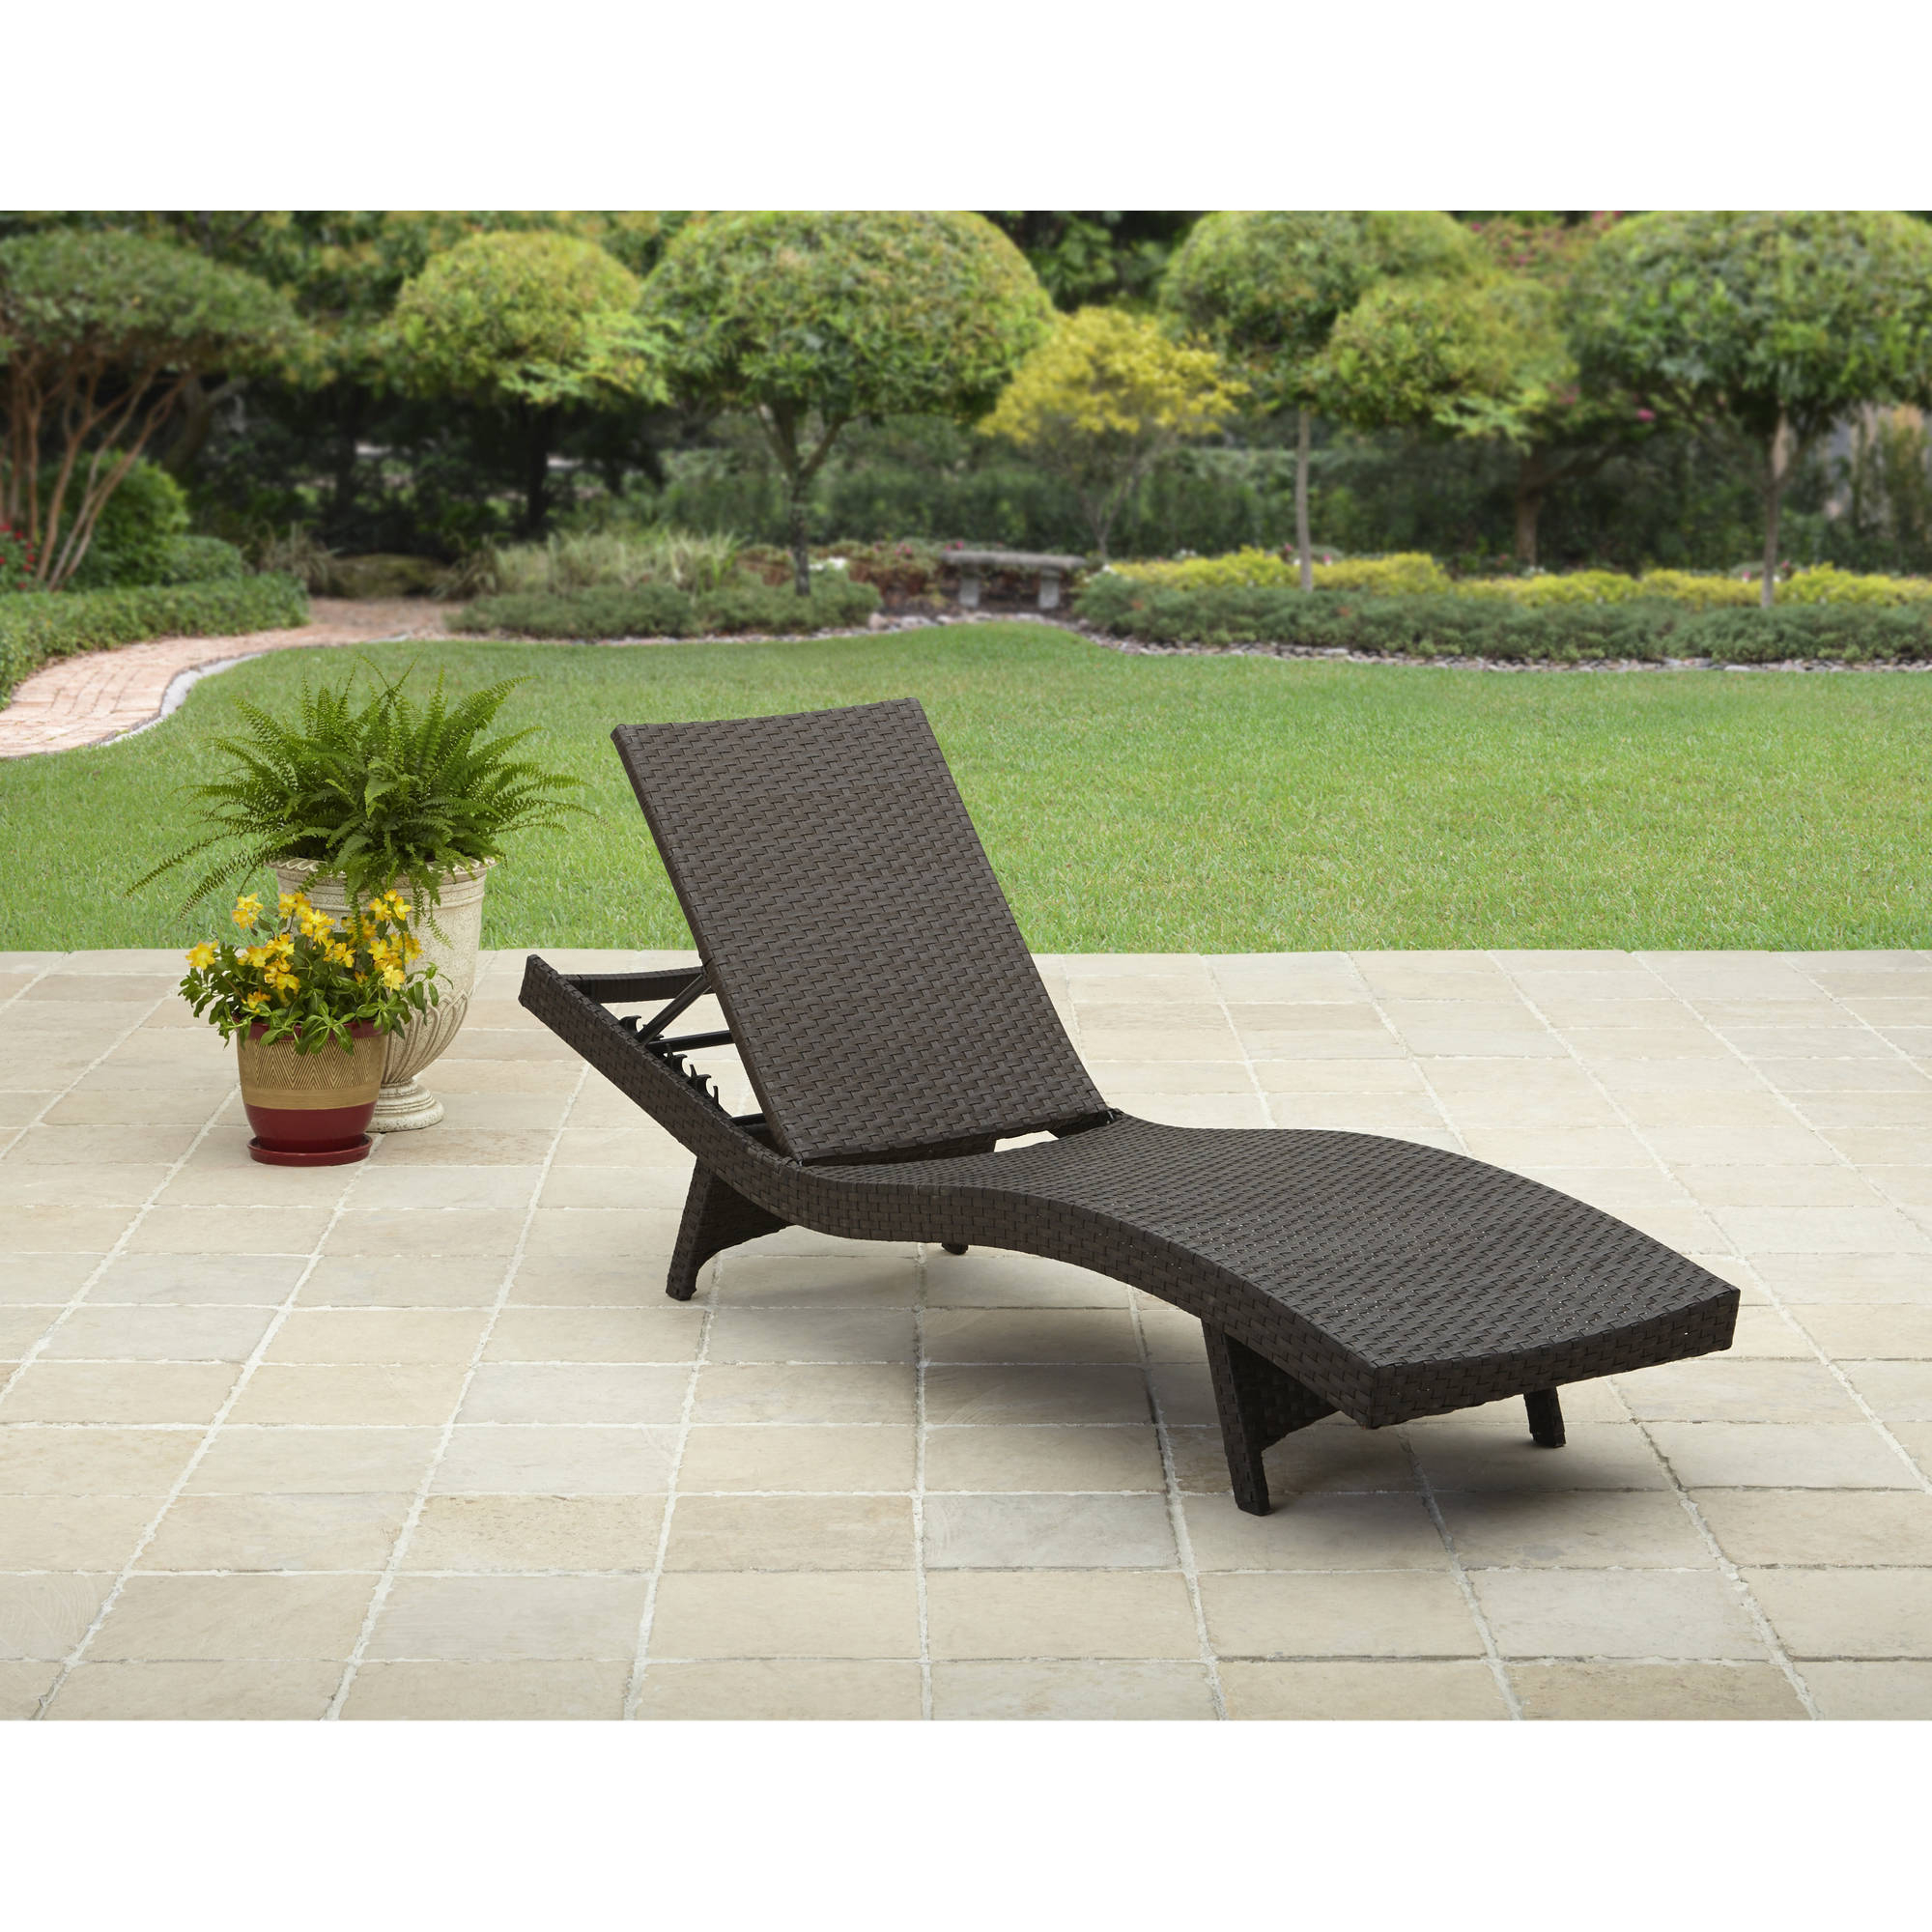 Folding Patio Lounge Beach Chairs With Canopy Within 2020 Furniture: Inspiring Folding Chair Design Ideaslawn (View 21 of 25)